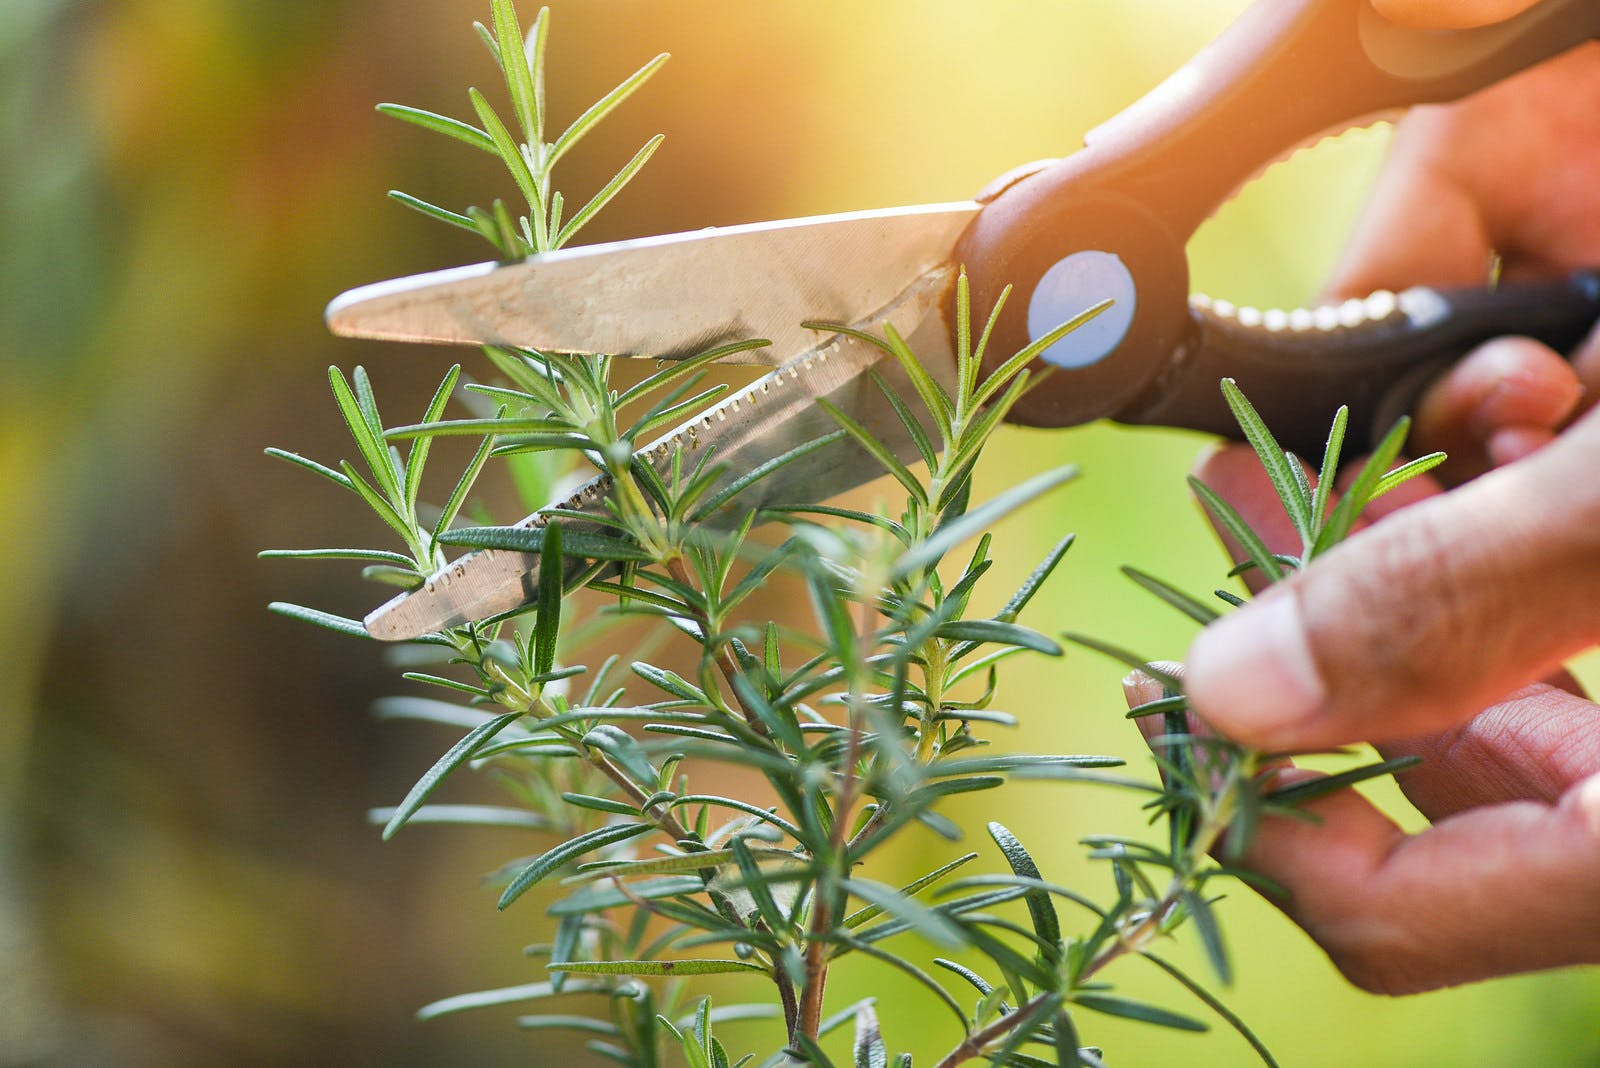 Cut rosemary plant growing in the garden for extracts essential oil / Pruning fresh rosemary herbs nature green background , selective focus